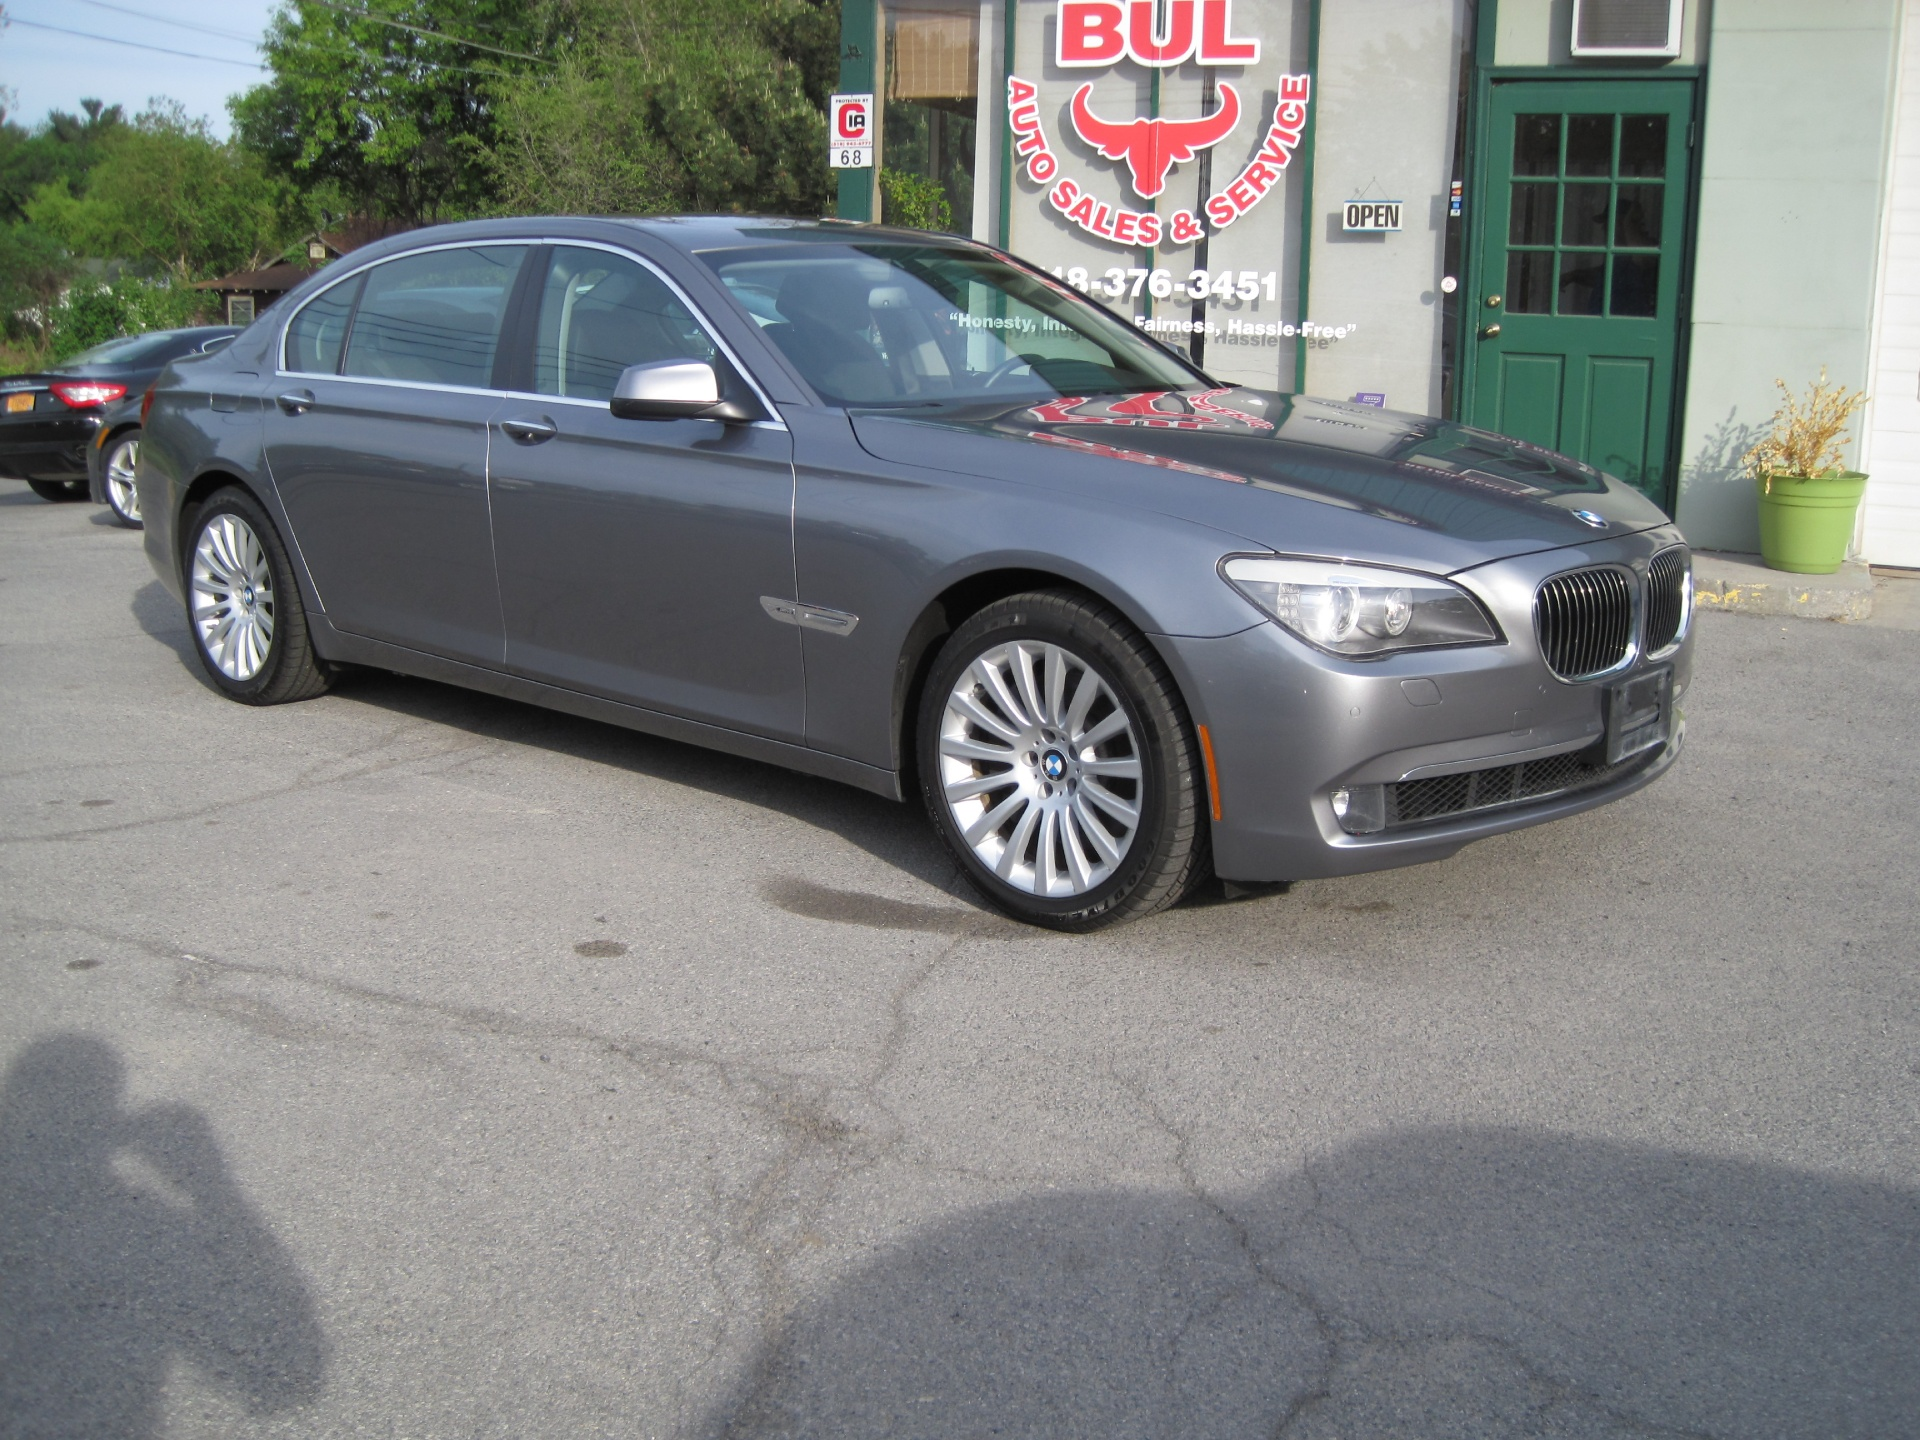 2012 Bmw 7 Series 750li Xdrive Awd Loaded Luxury Seating Cold Weather And More Stock 15079 For Sale Near Albany Ny Ny Bmw Dealer For Sale In Albany Ny 15079 Bul Auto Sales